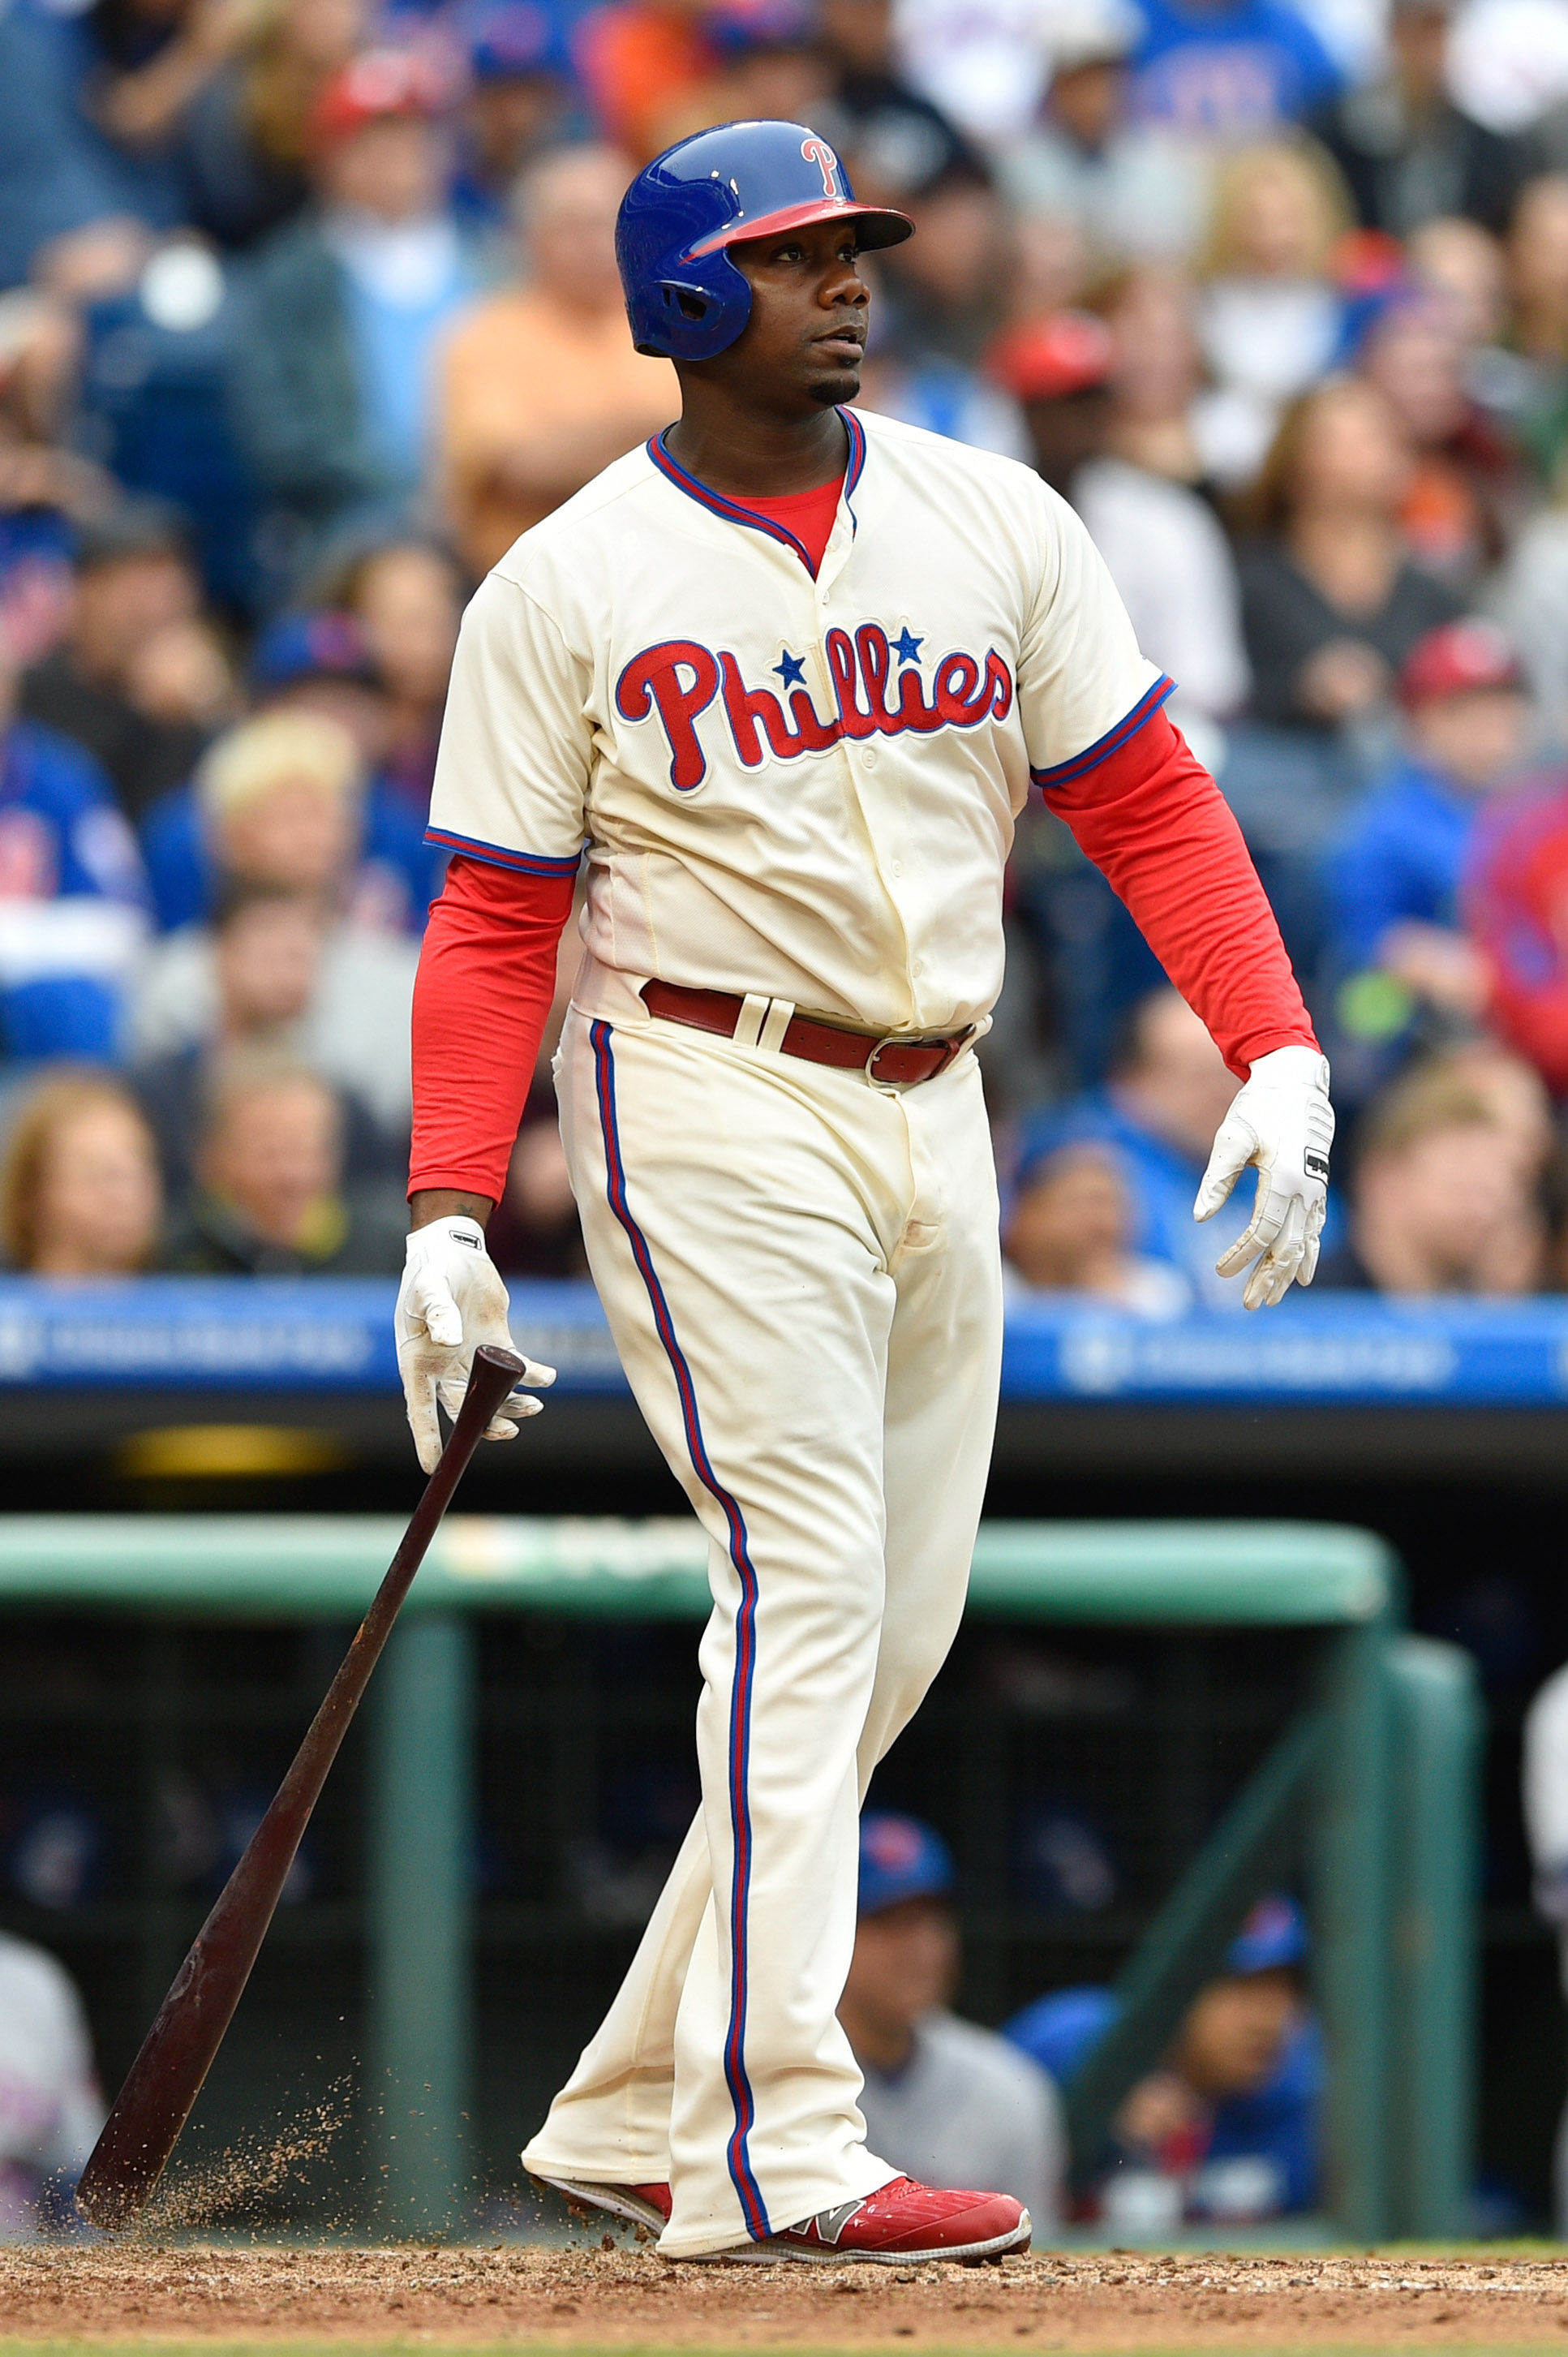 Philadelphia Phillies Preview